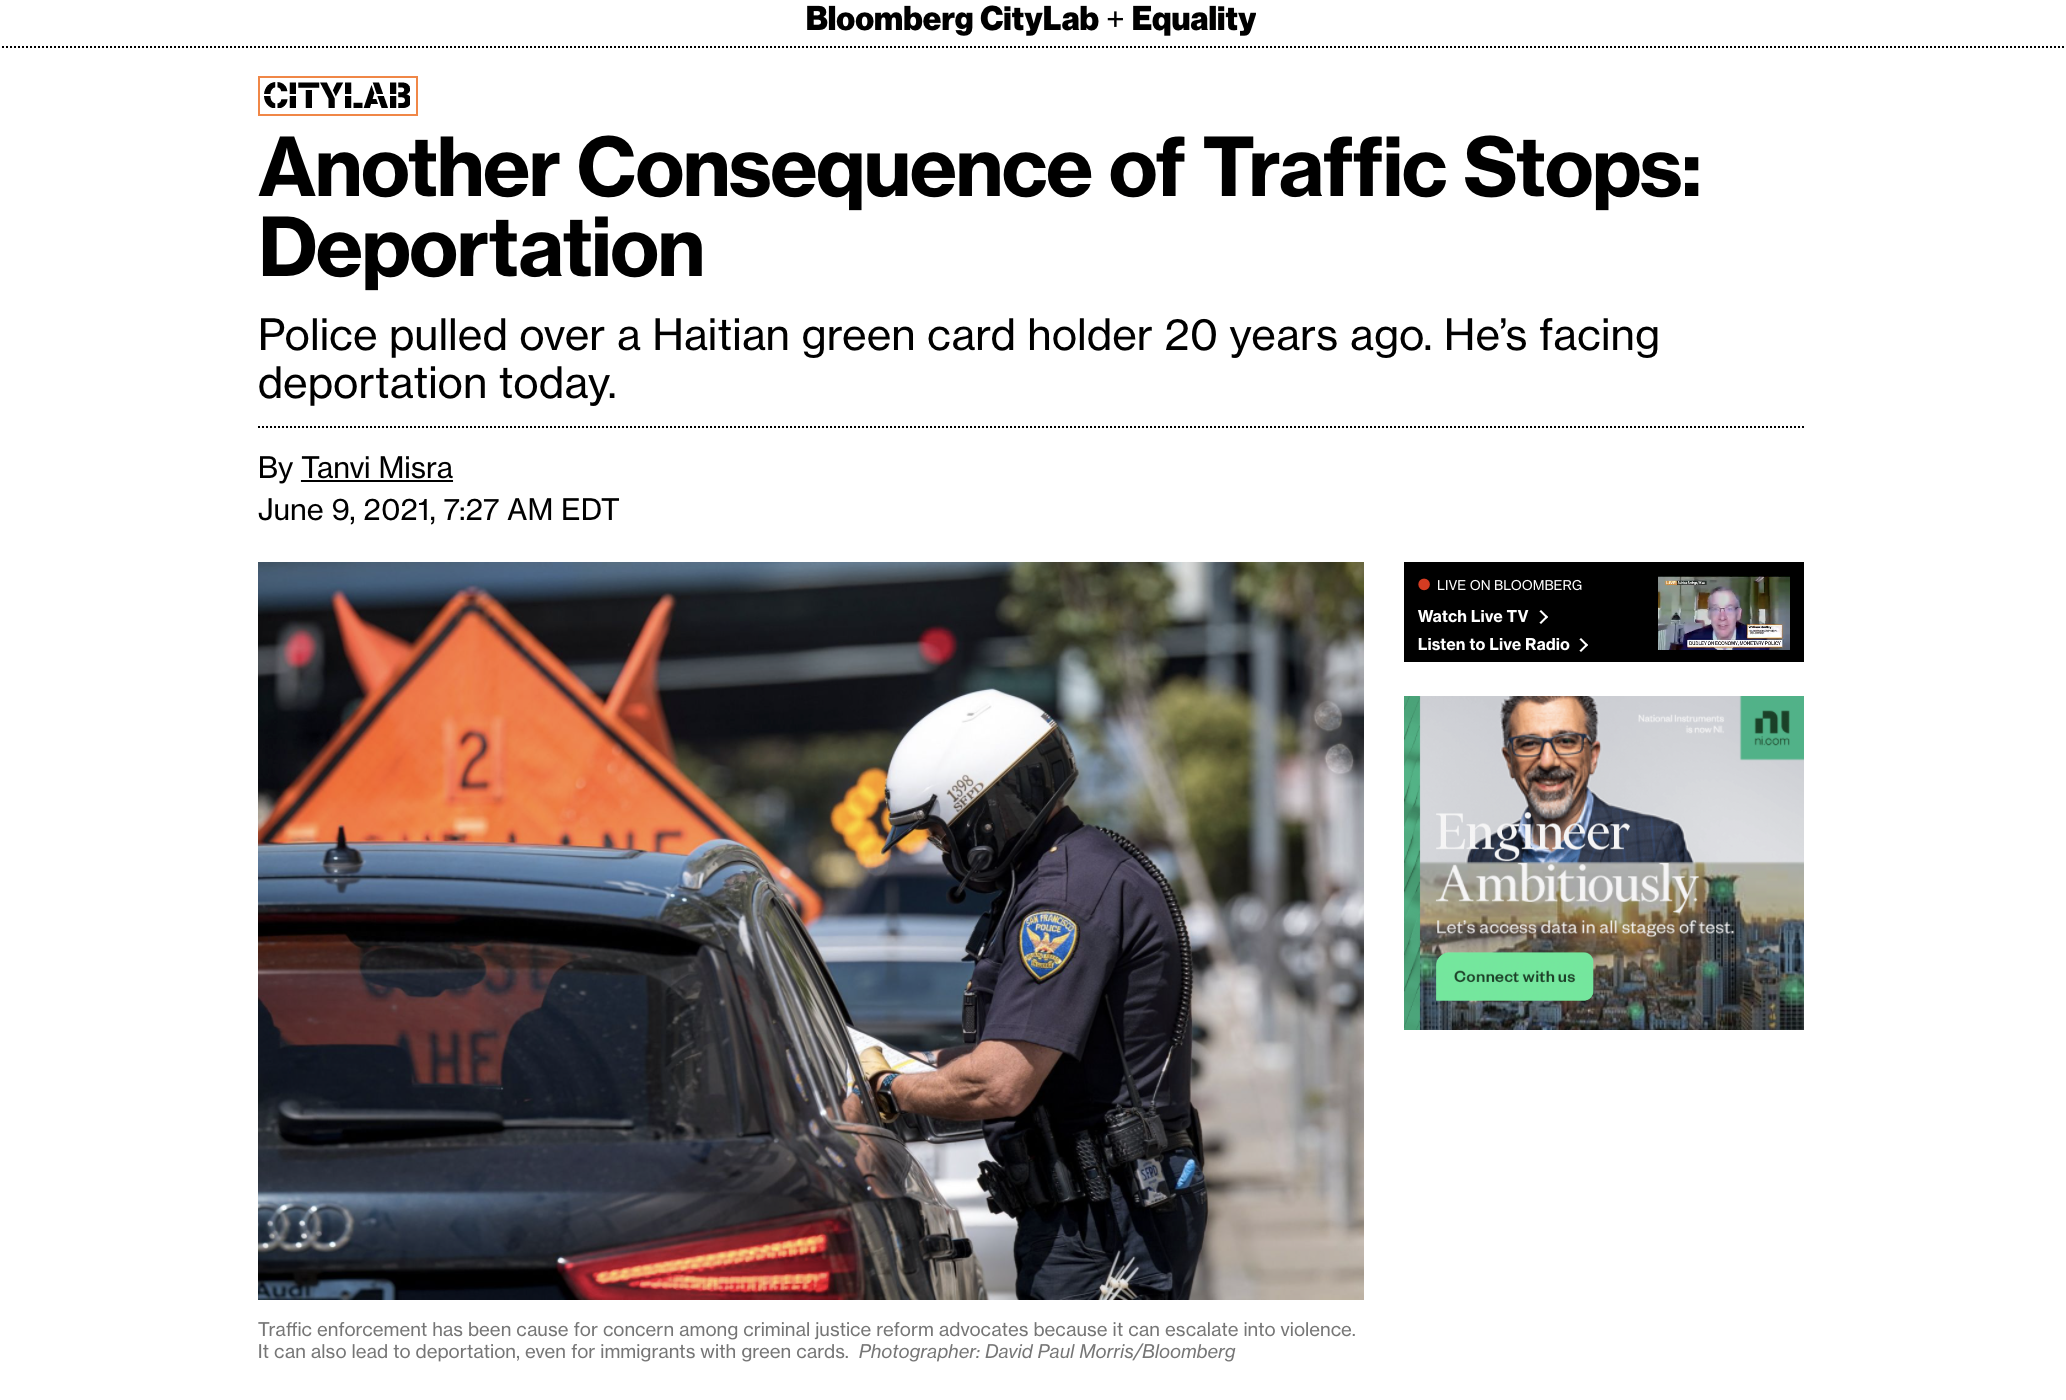 Another Consequence of Traffic Stops: Deportation